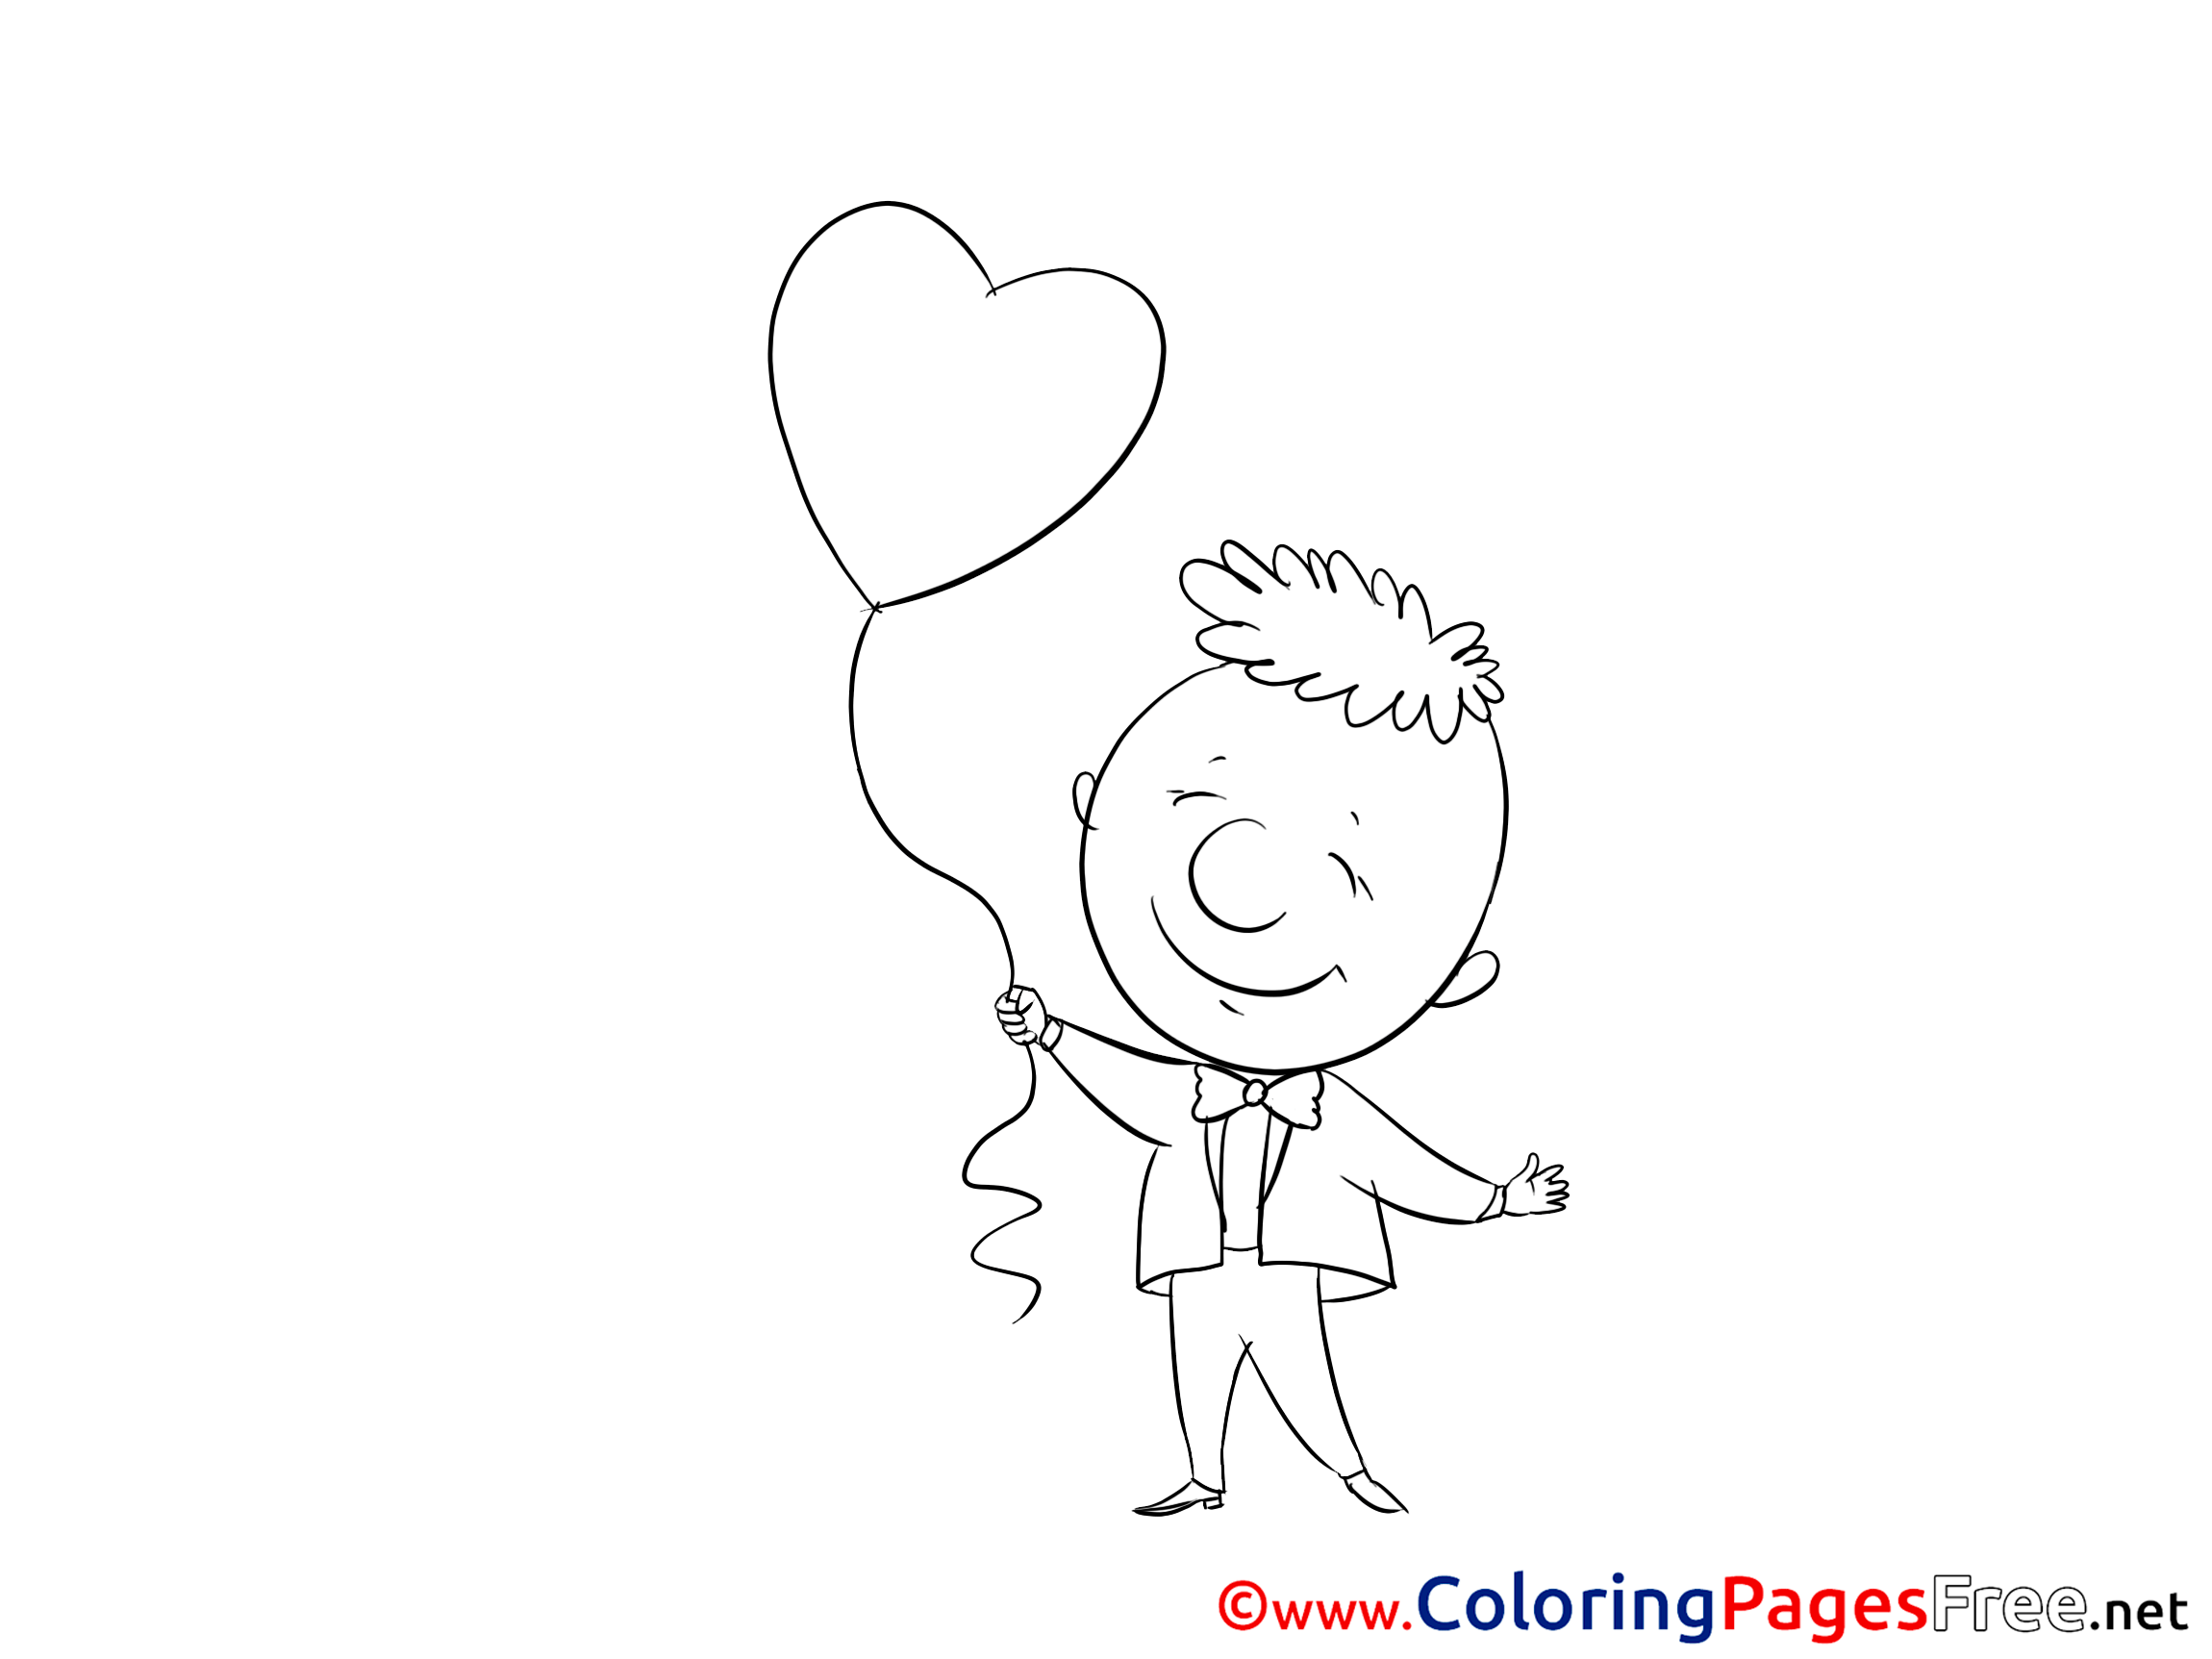 Boy Balloon Heart Download Valentine S Day Coloring Pages